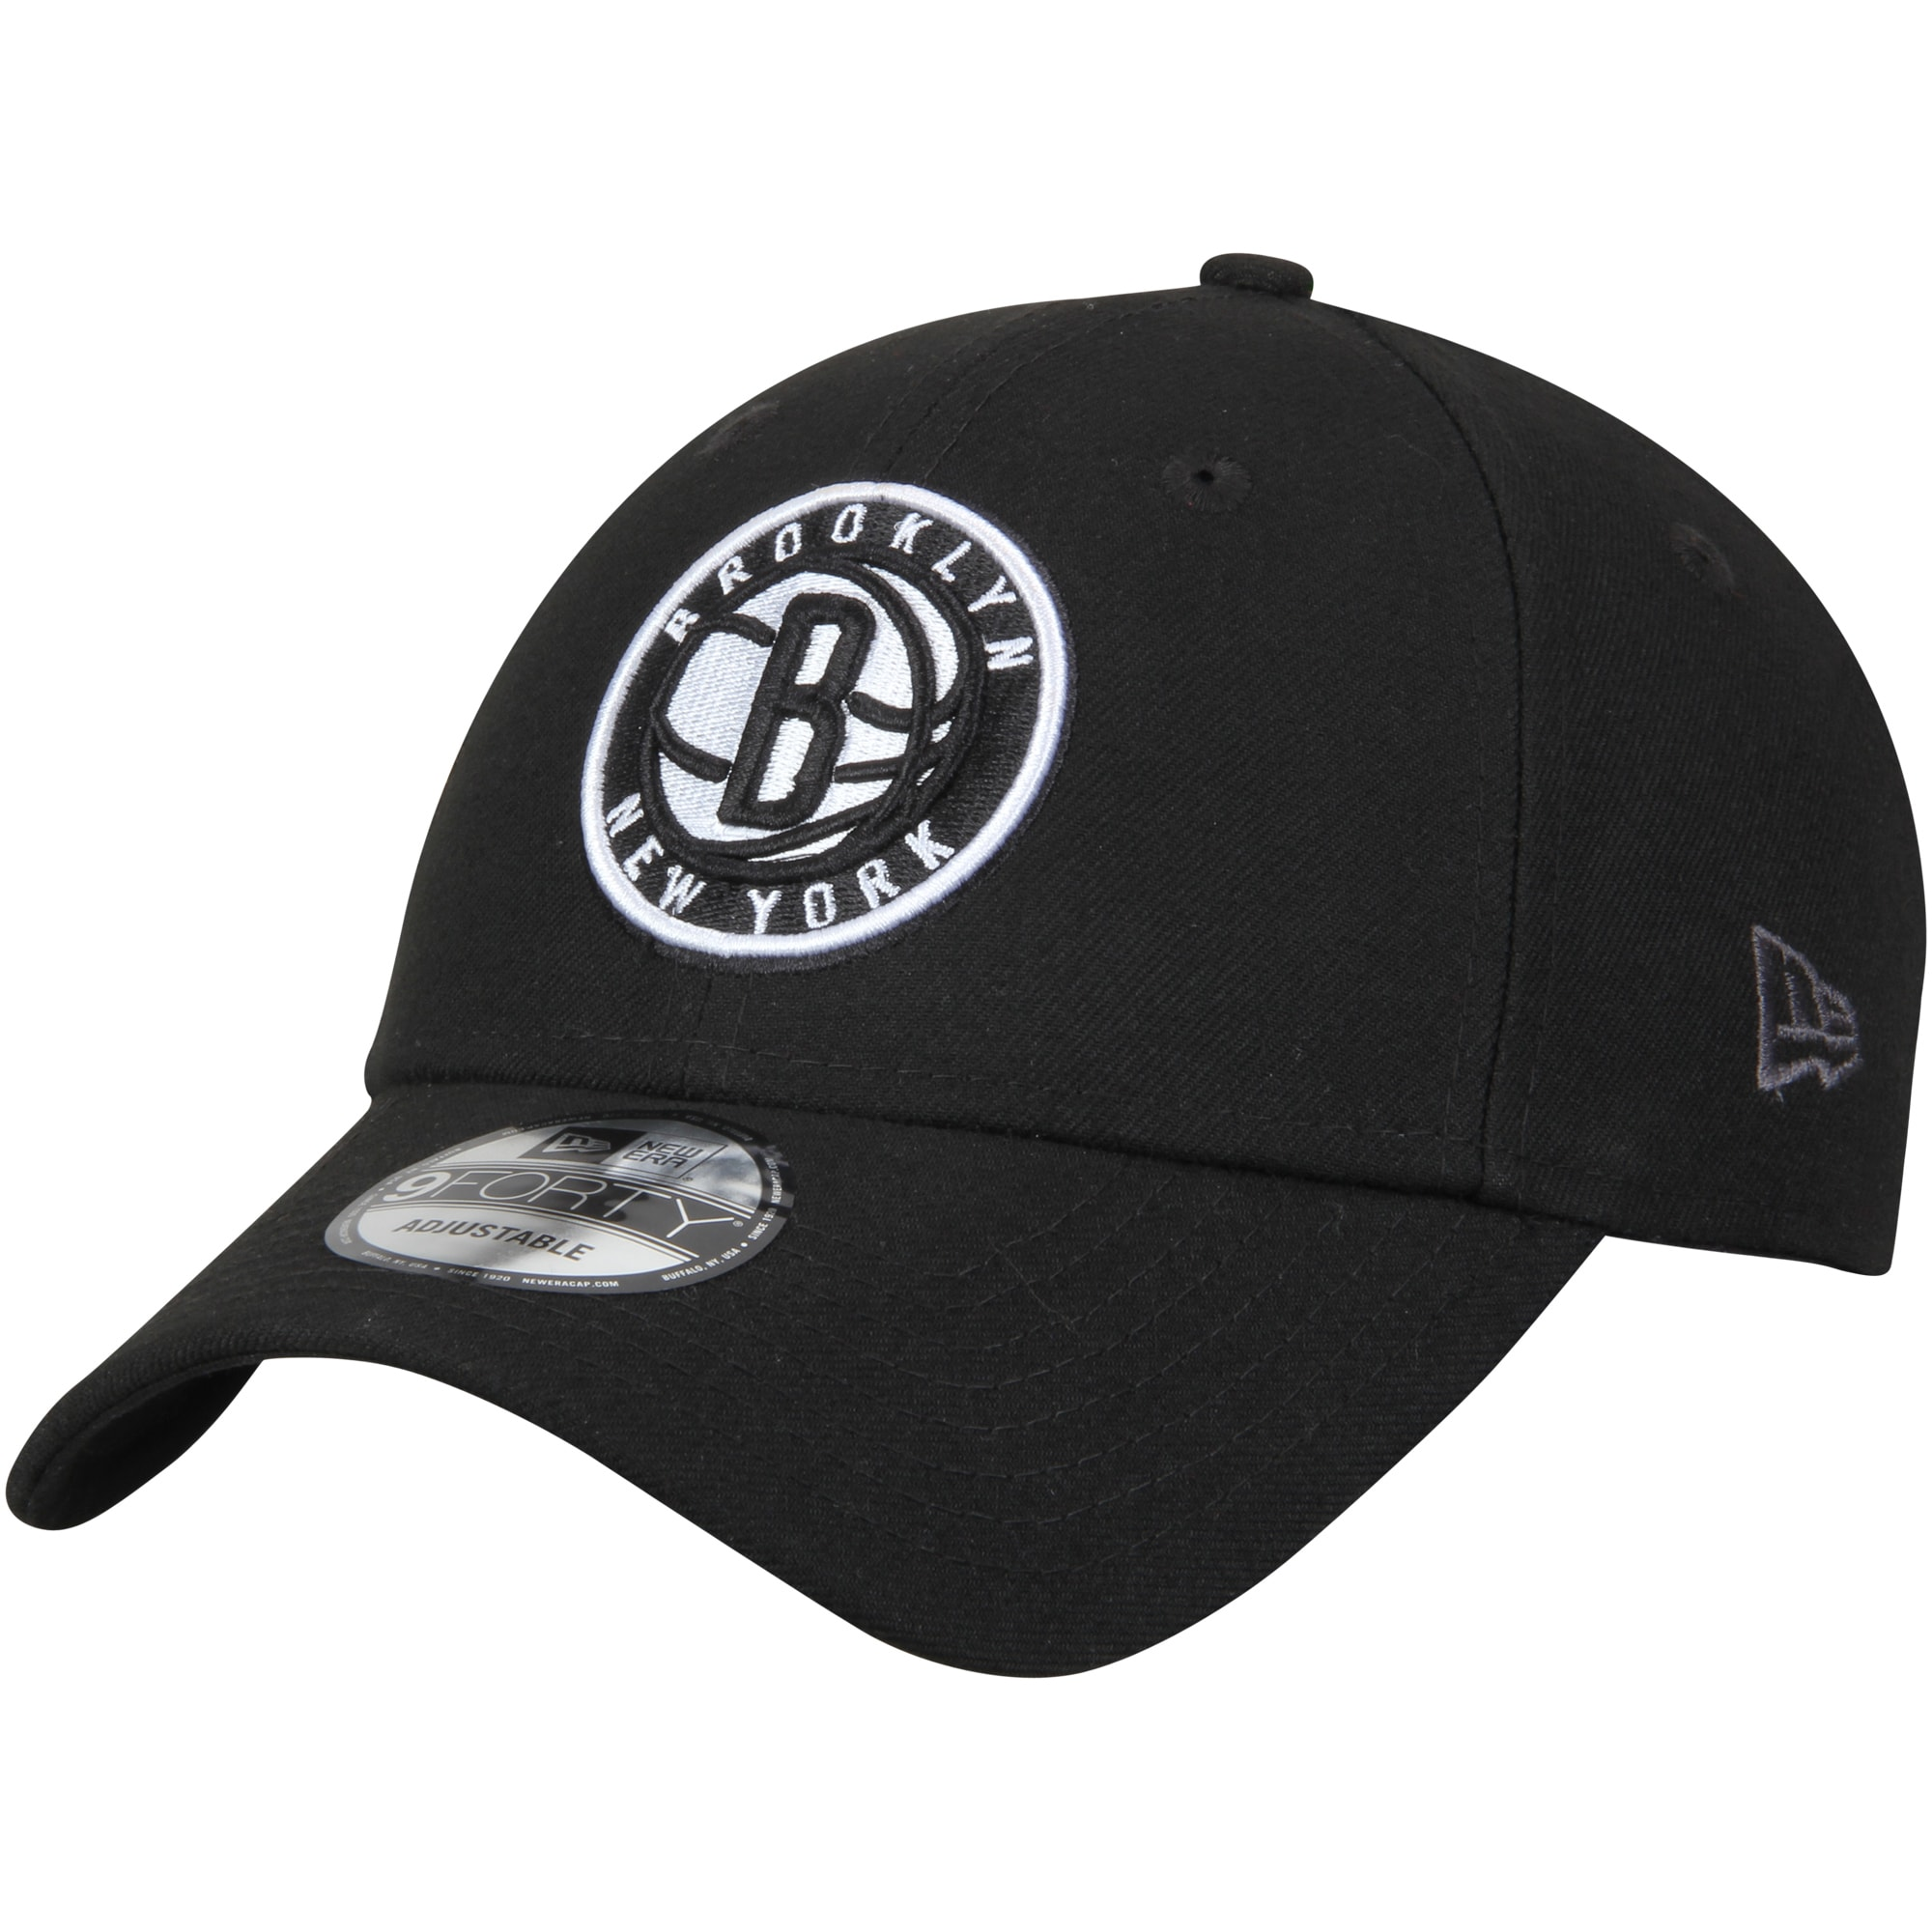 Brooklyn Nets New Era Official Team Color 9FORTY Adjustable Hat - Black